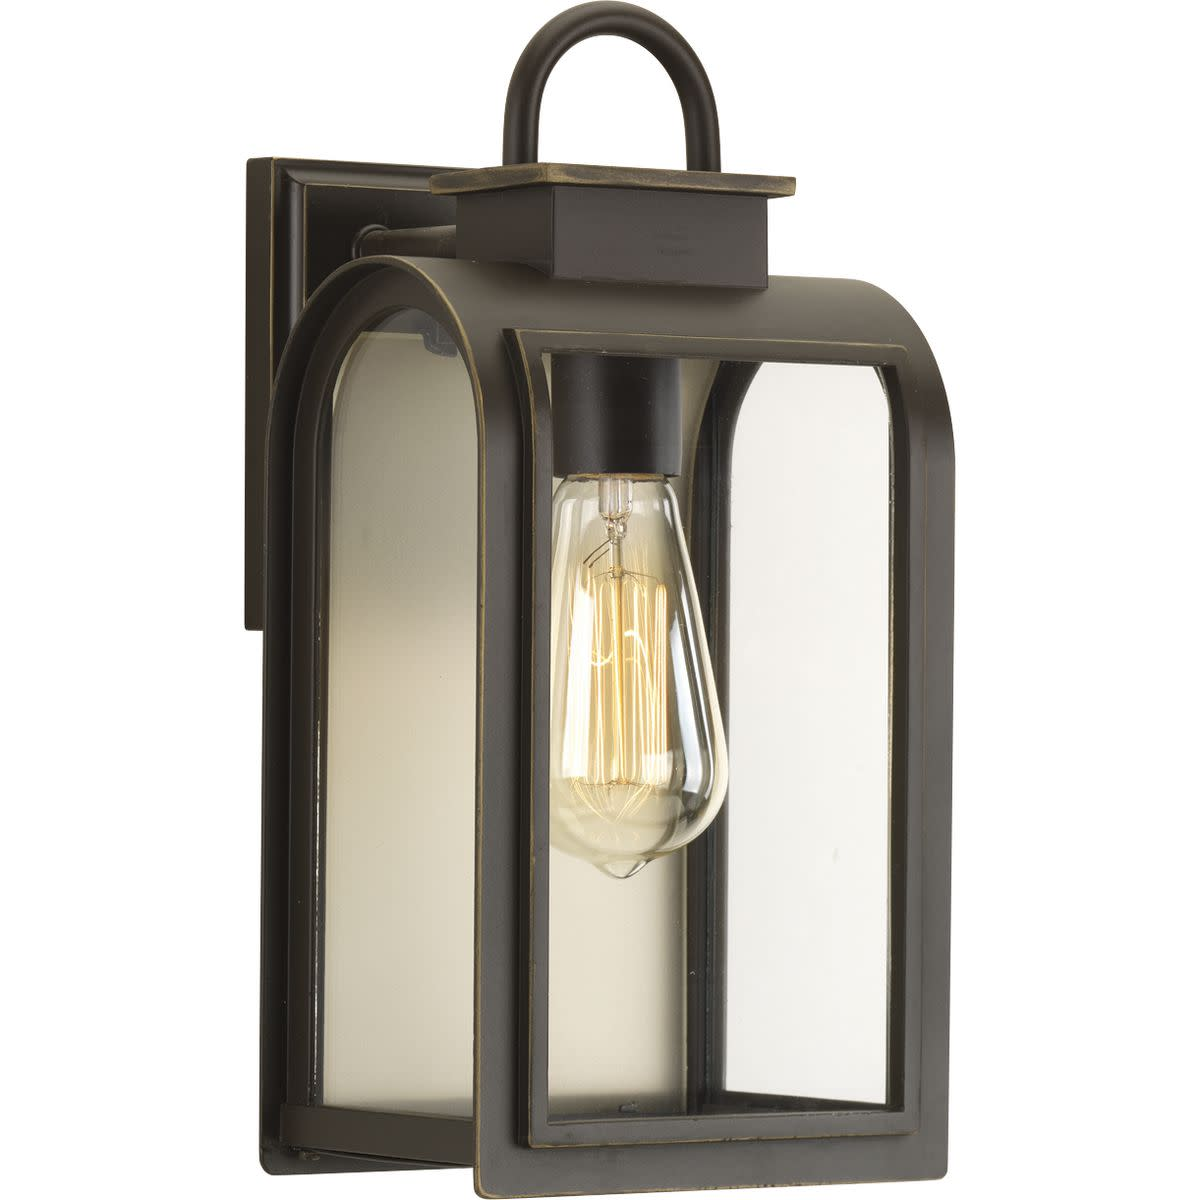 Refuge Collection One-Light Small Wall Lantern